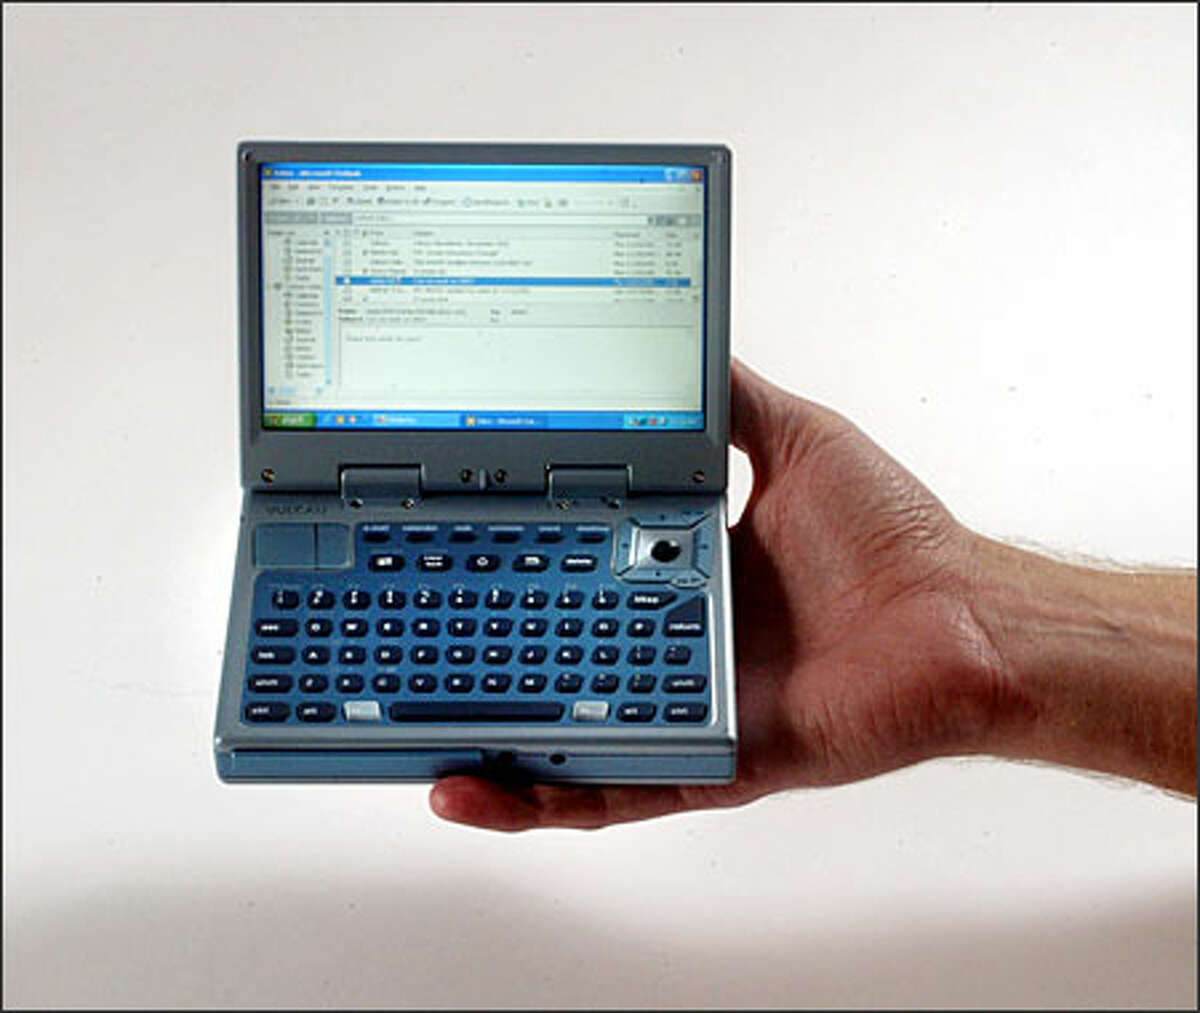 The Mini-PC is about half the size of a small laptop. No makers for the machine have been named yet.